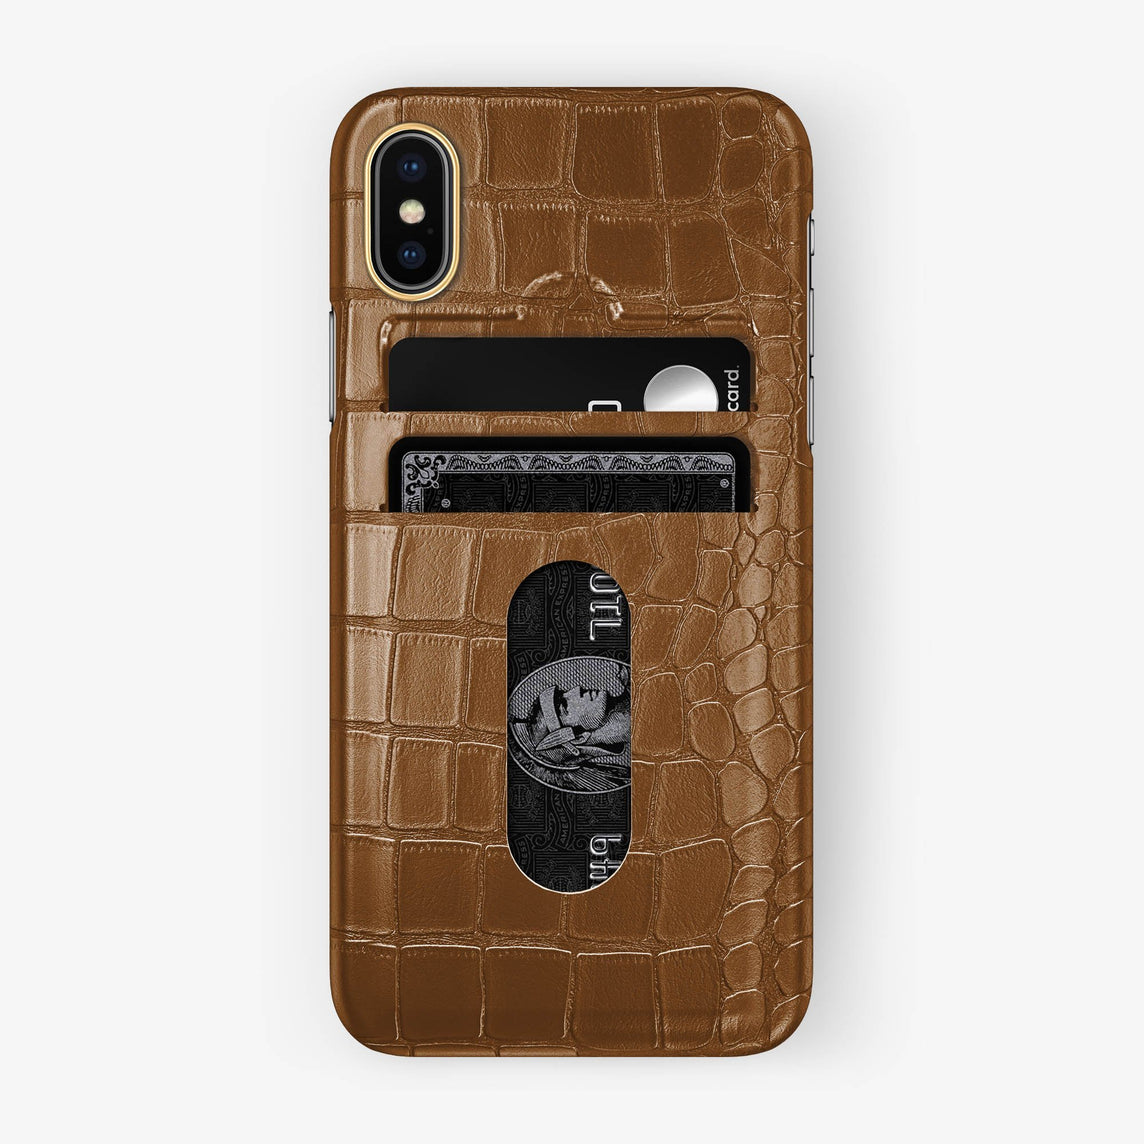 Alligator Card Holder Case iPhone X/Xs | Cognac - Yellow Gold with-personalization